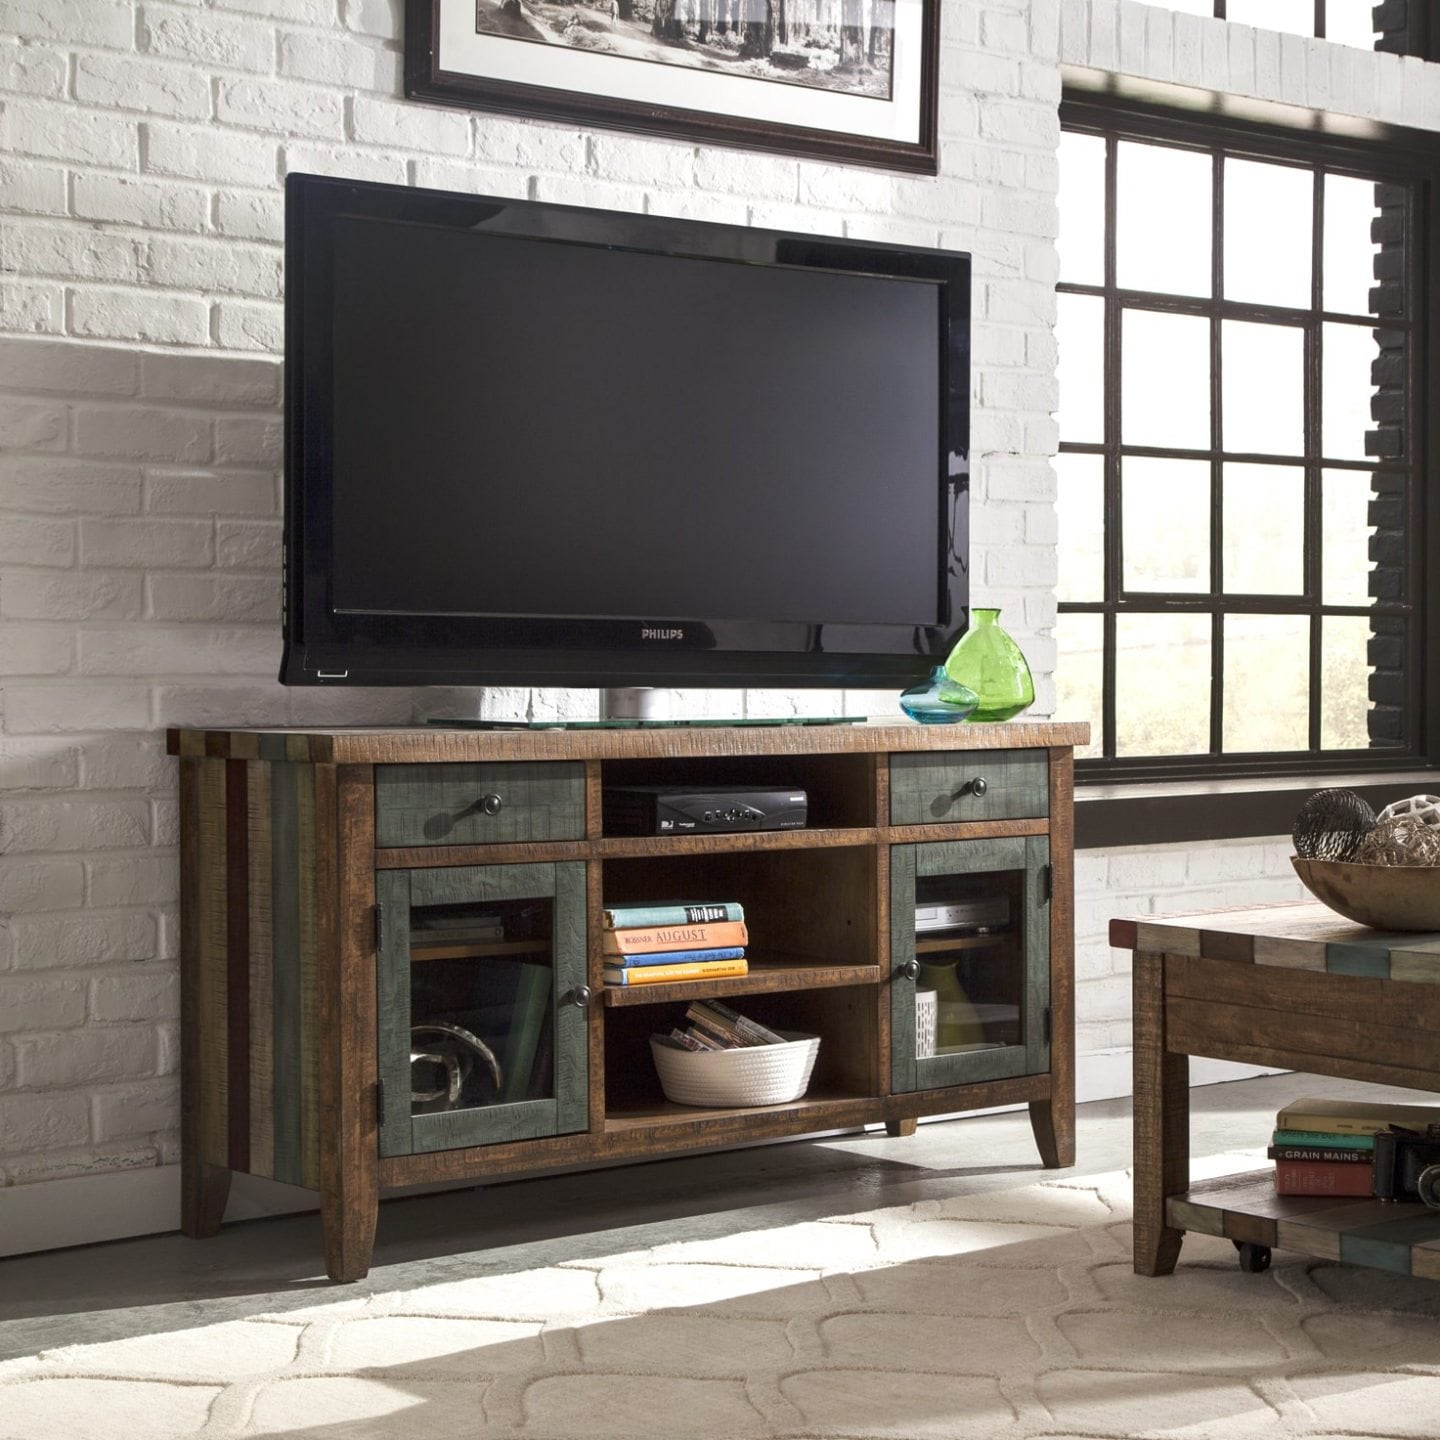 6 Tips For Buying A Great Tv Stand For Your Home Overstock Com